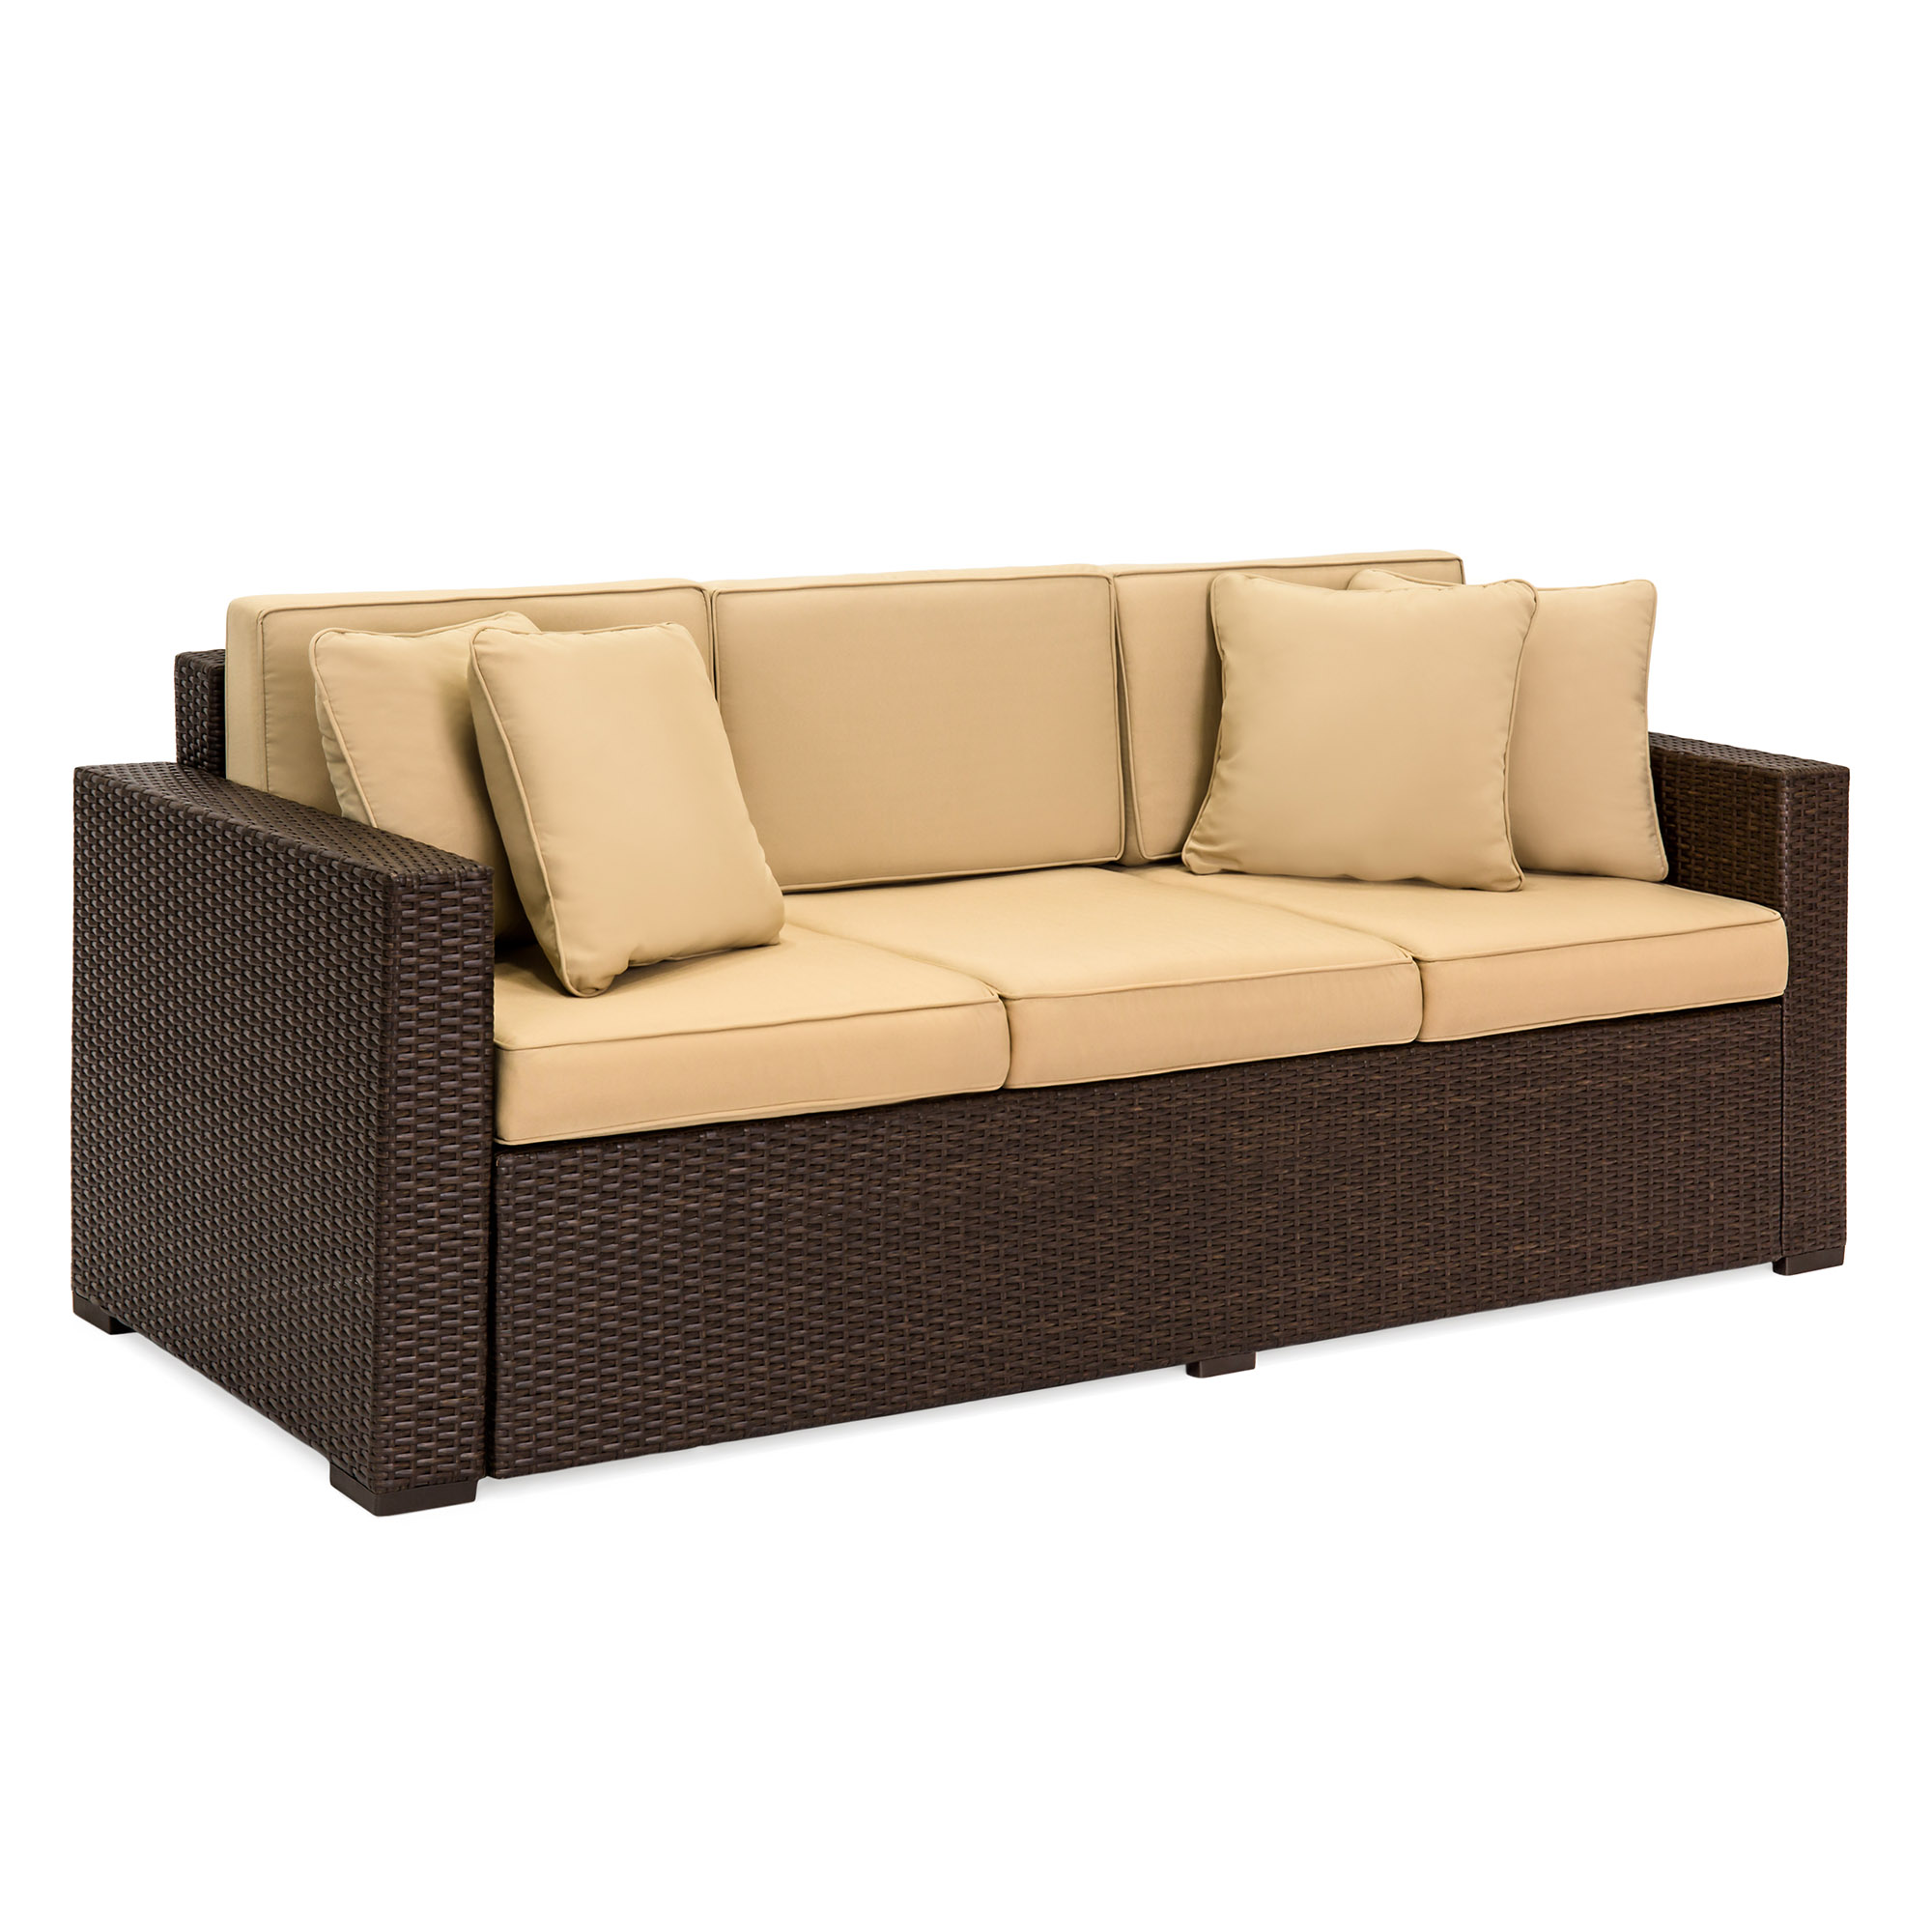 Best choice products 3 seat outdoor wicker sofa couch patio furniture w steel frame and removable cushions brown walmart com